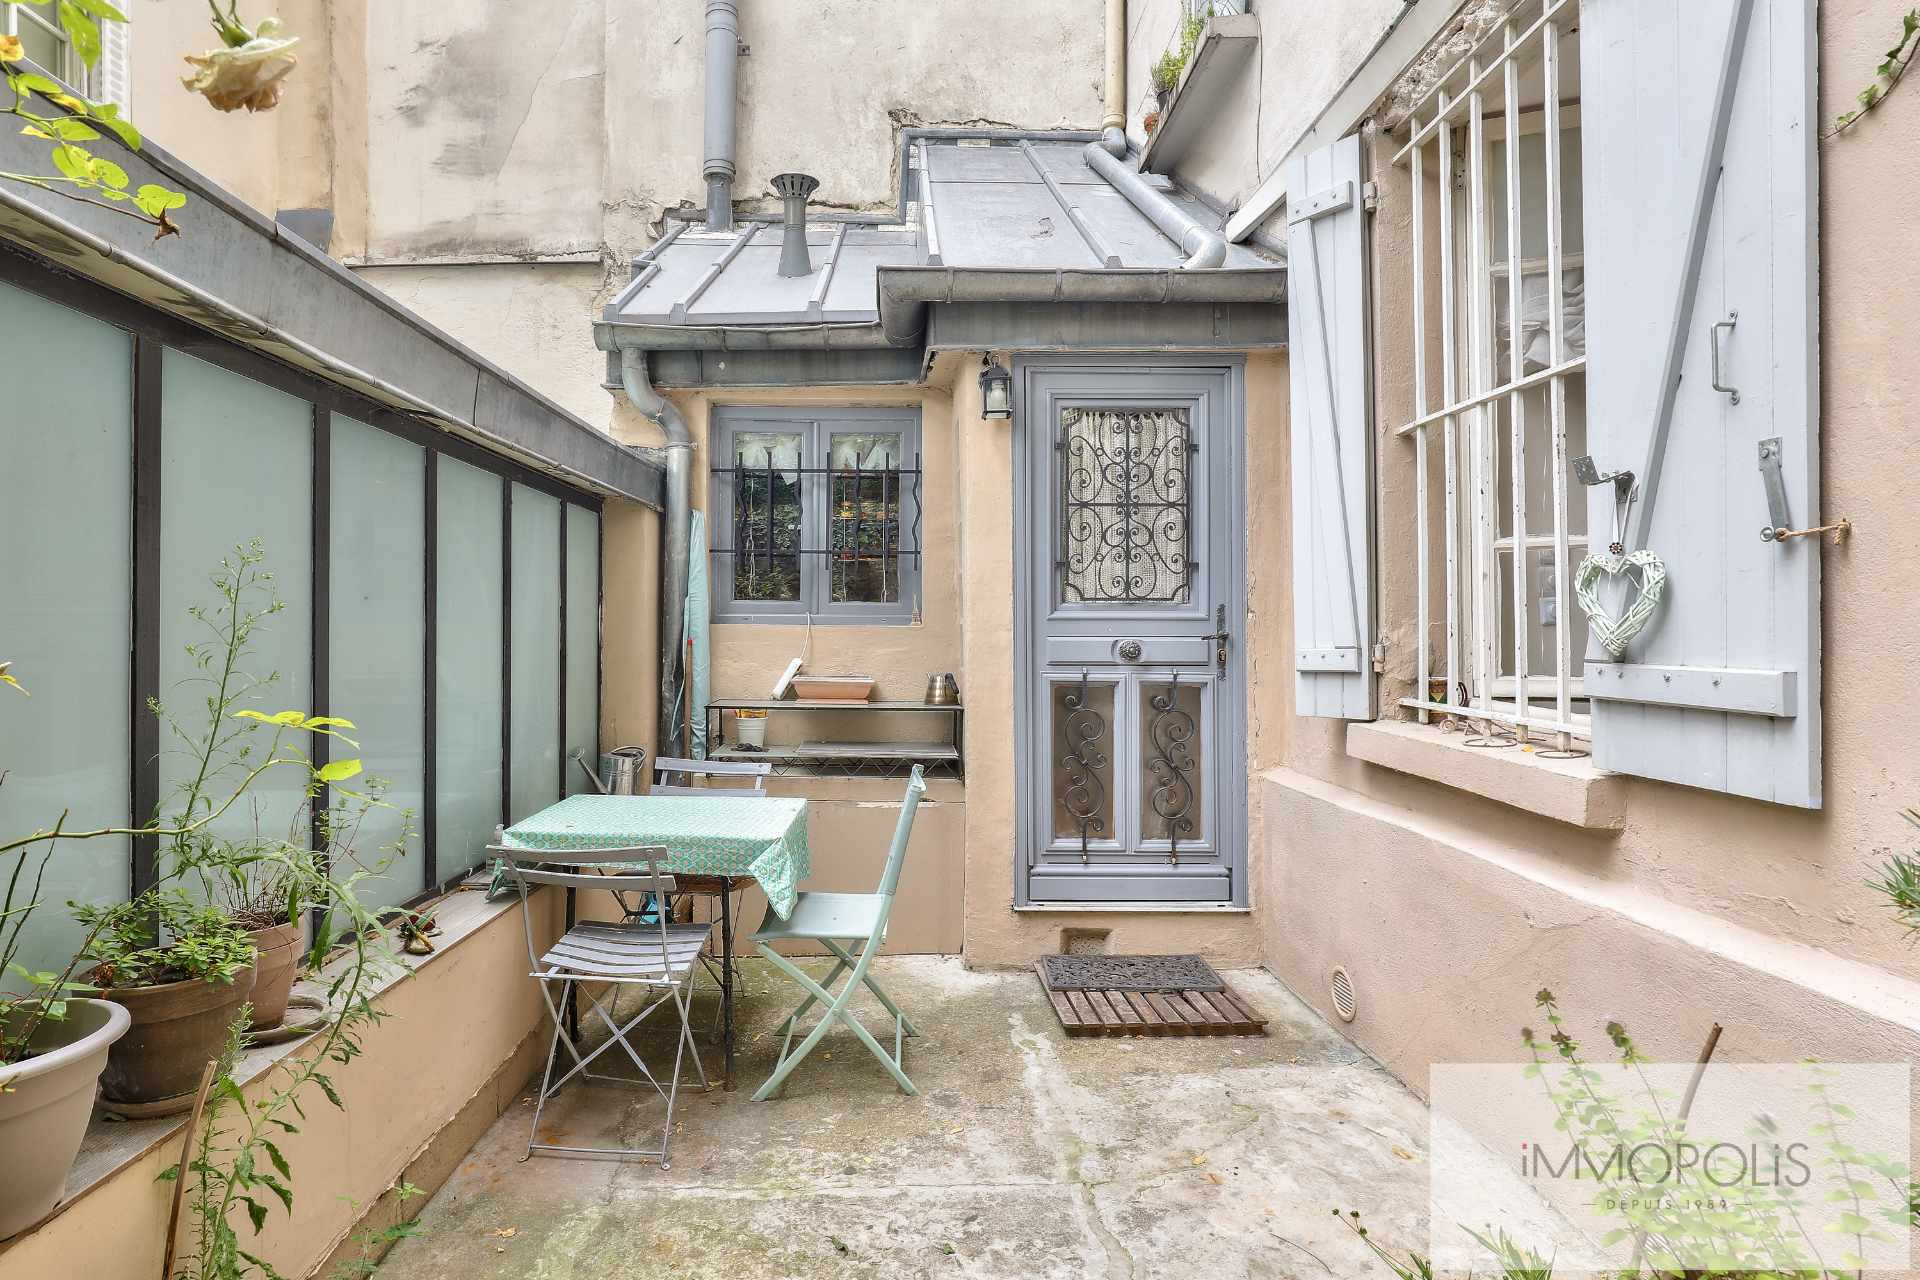 Montmartre, Gabrielle Street, beautiful 2 rooms completely renovated with stones, bricks and exposed beams: like a house! 1